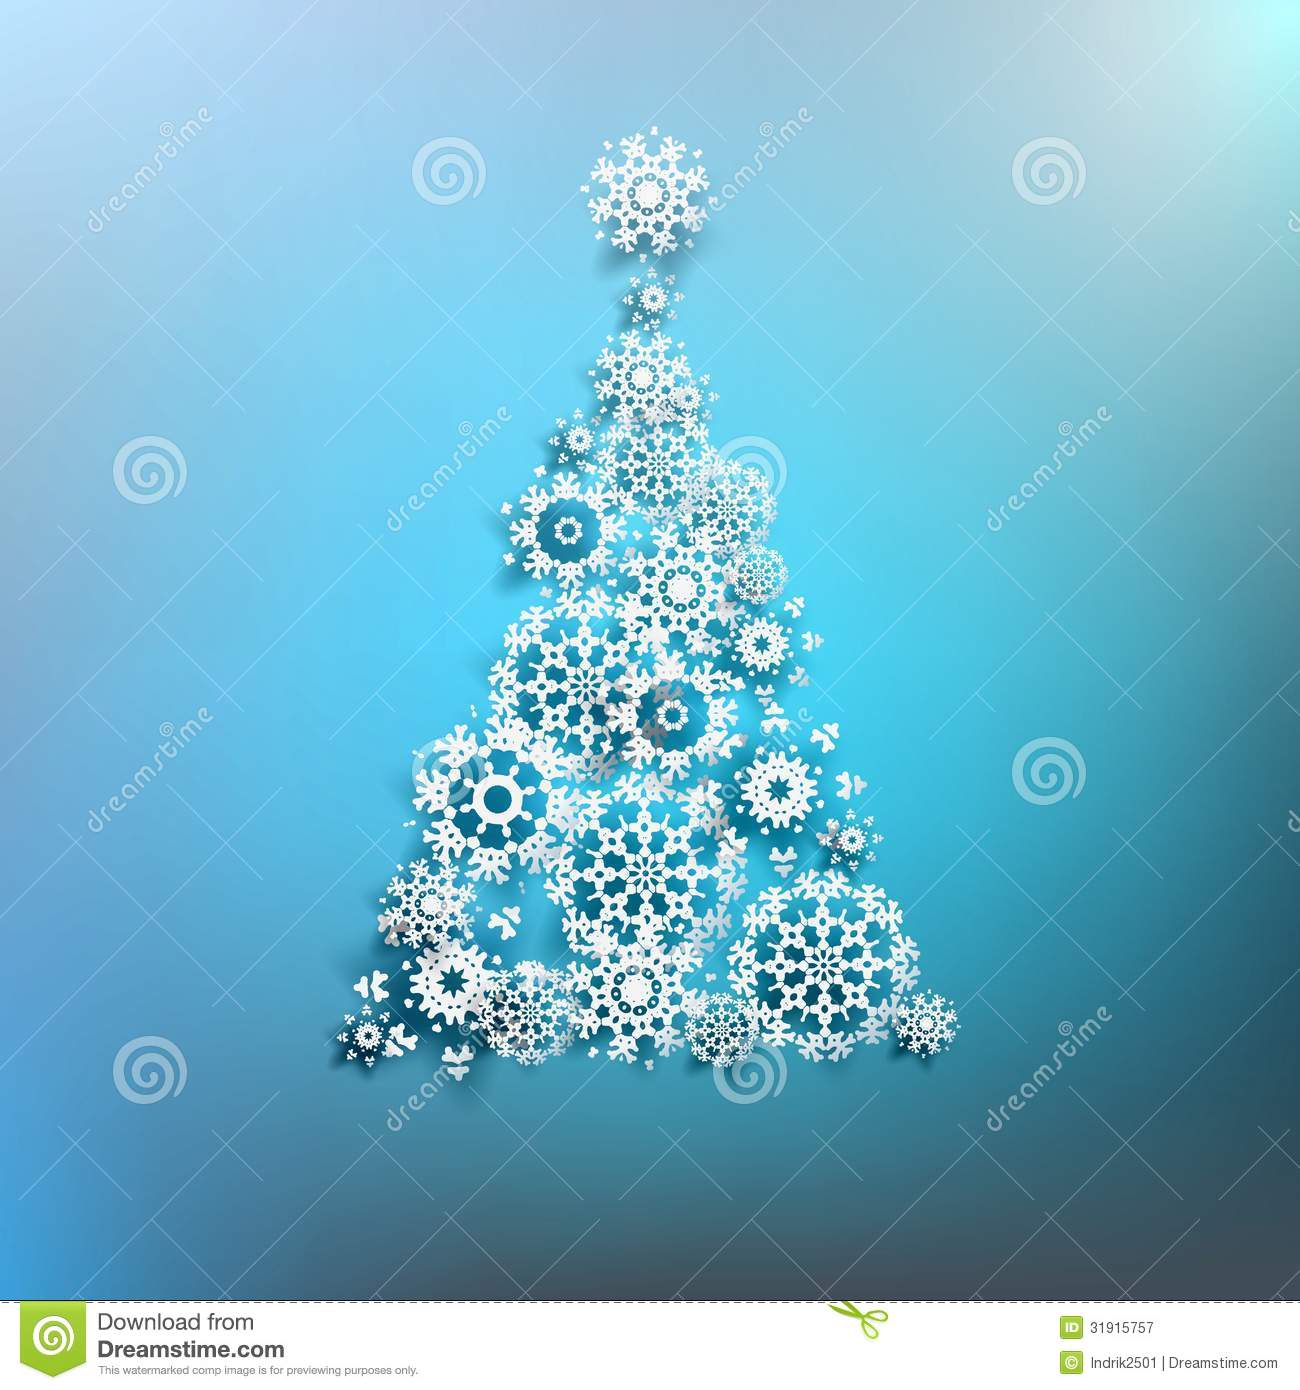 Paper Christmas Tree Made From Snowflakes EPS 10 Stock Vector